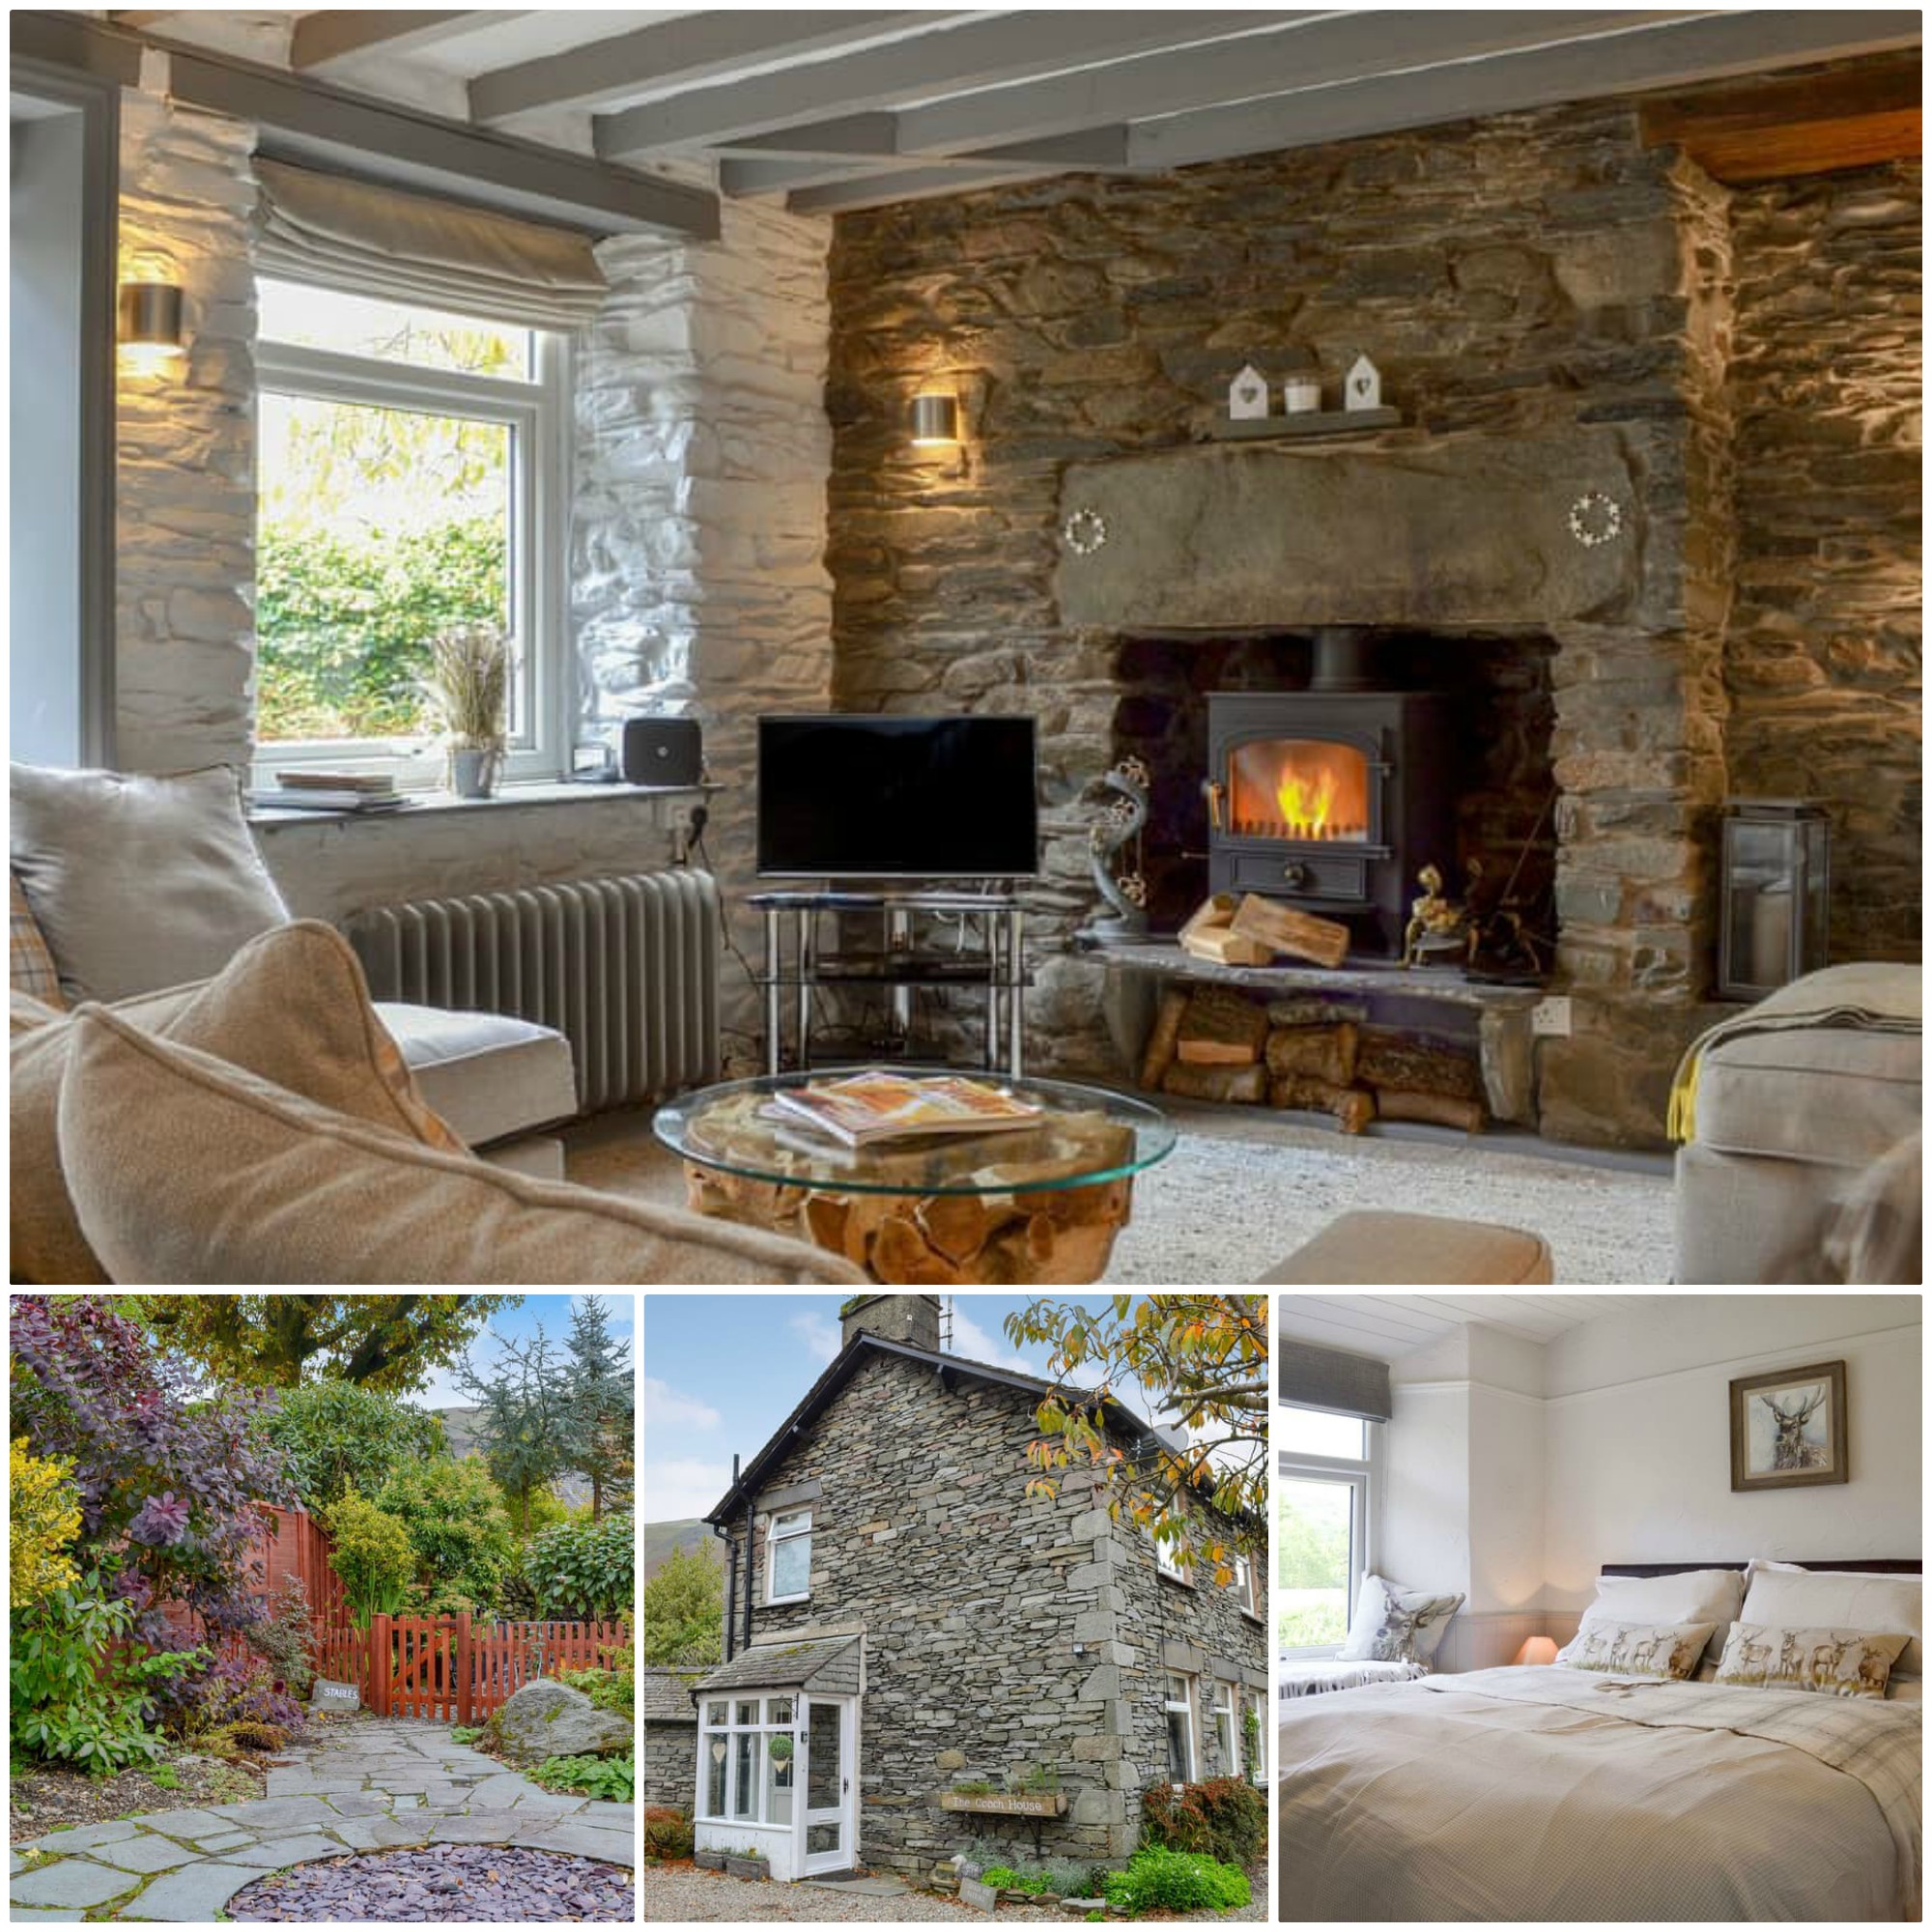 Traditional Lakeland holiday cottage with a wood-burning stove and pet friendly, in Grasmere